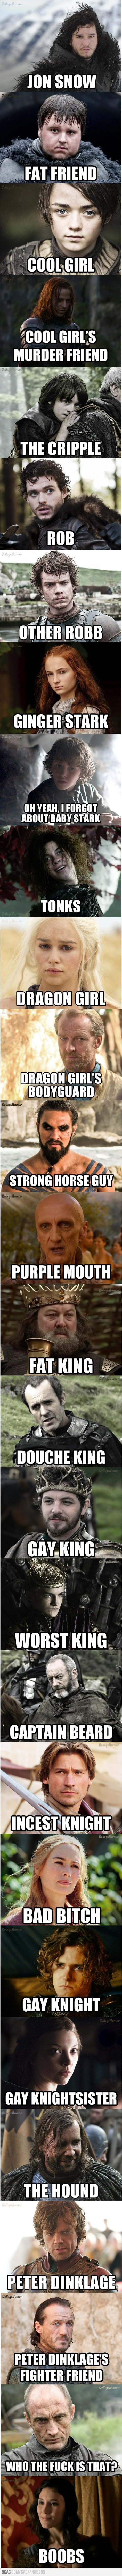 lol newbs. this is so funny though - i definitely did this the first time i watched lotr.